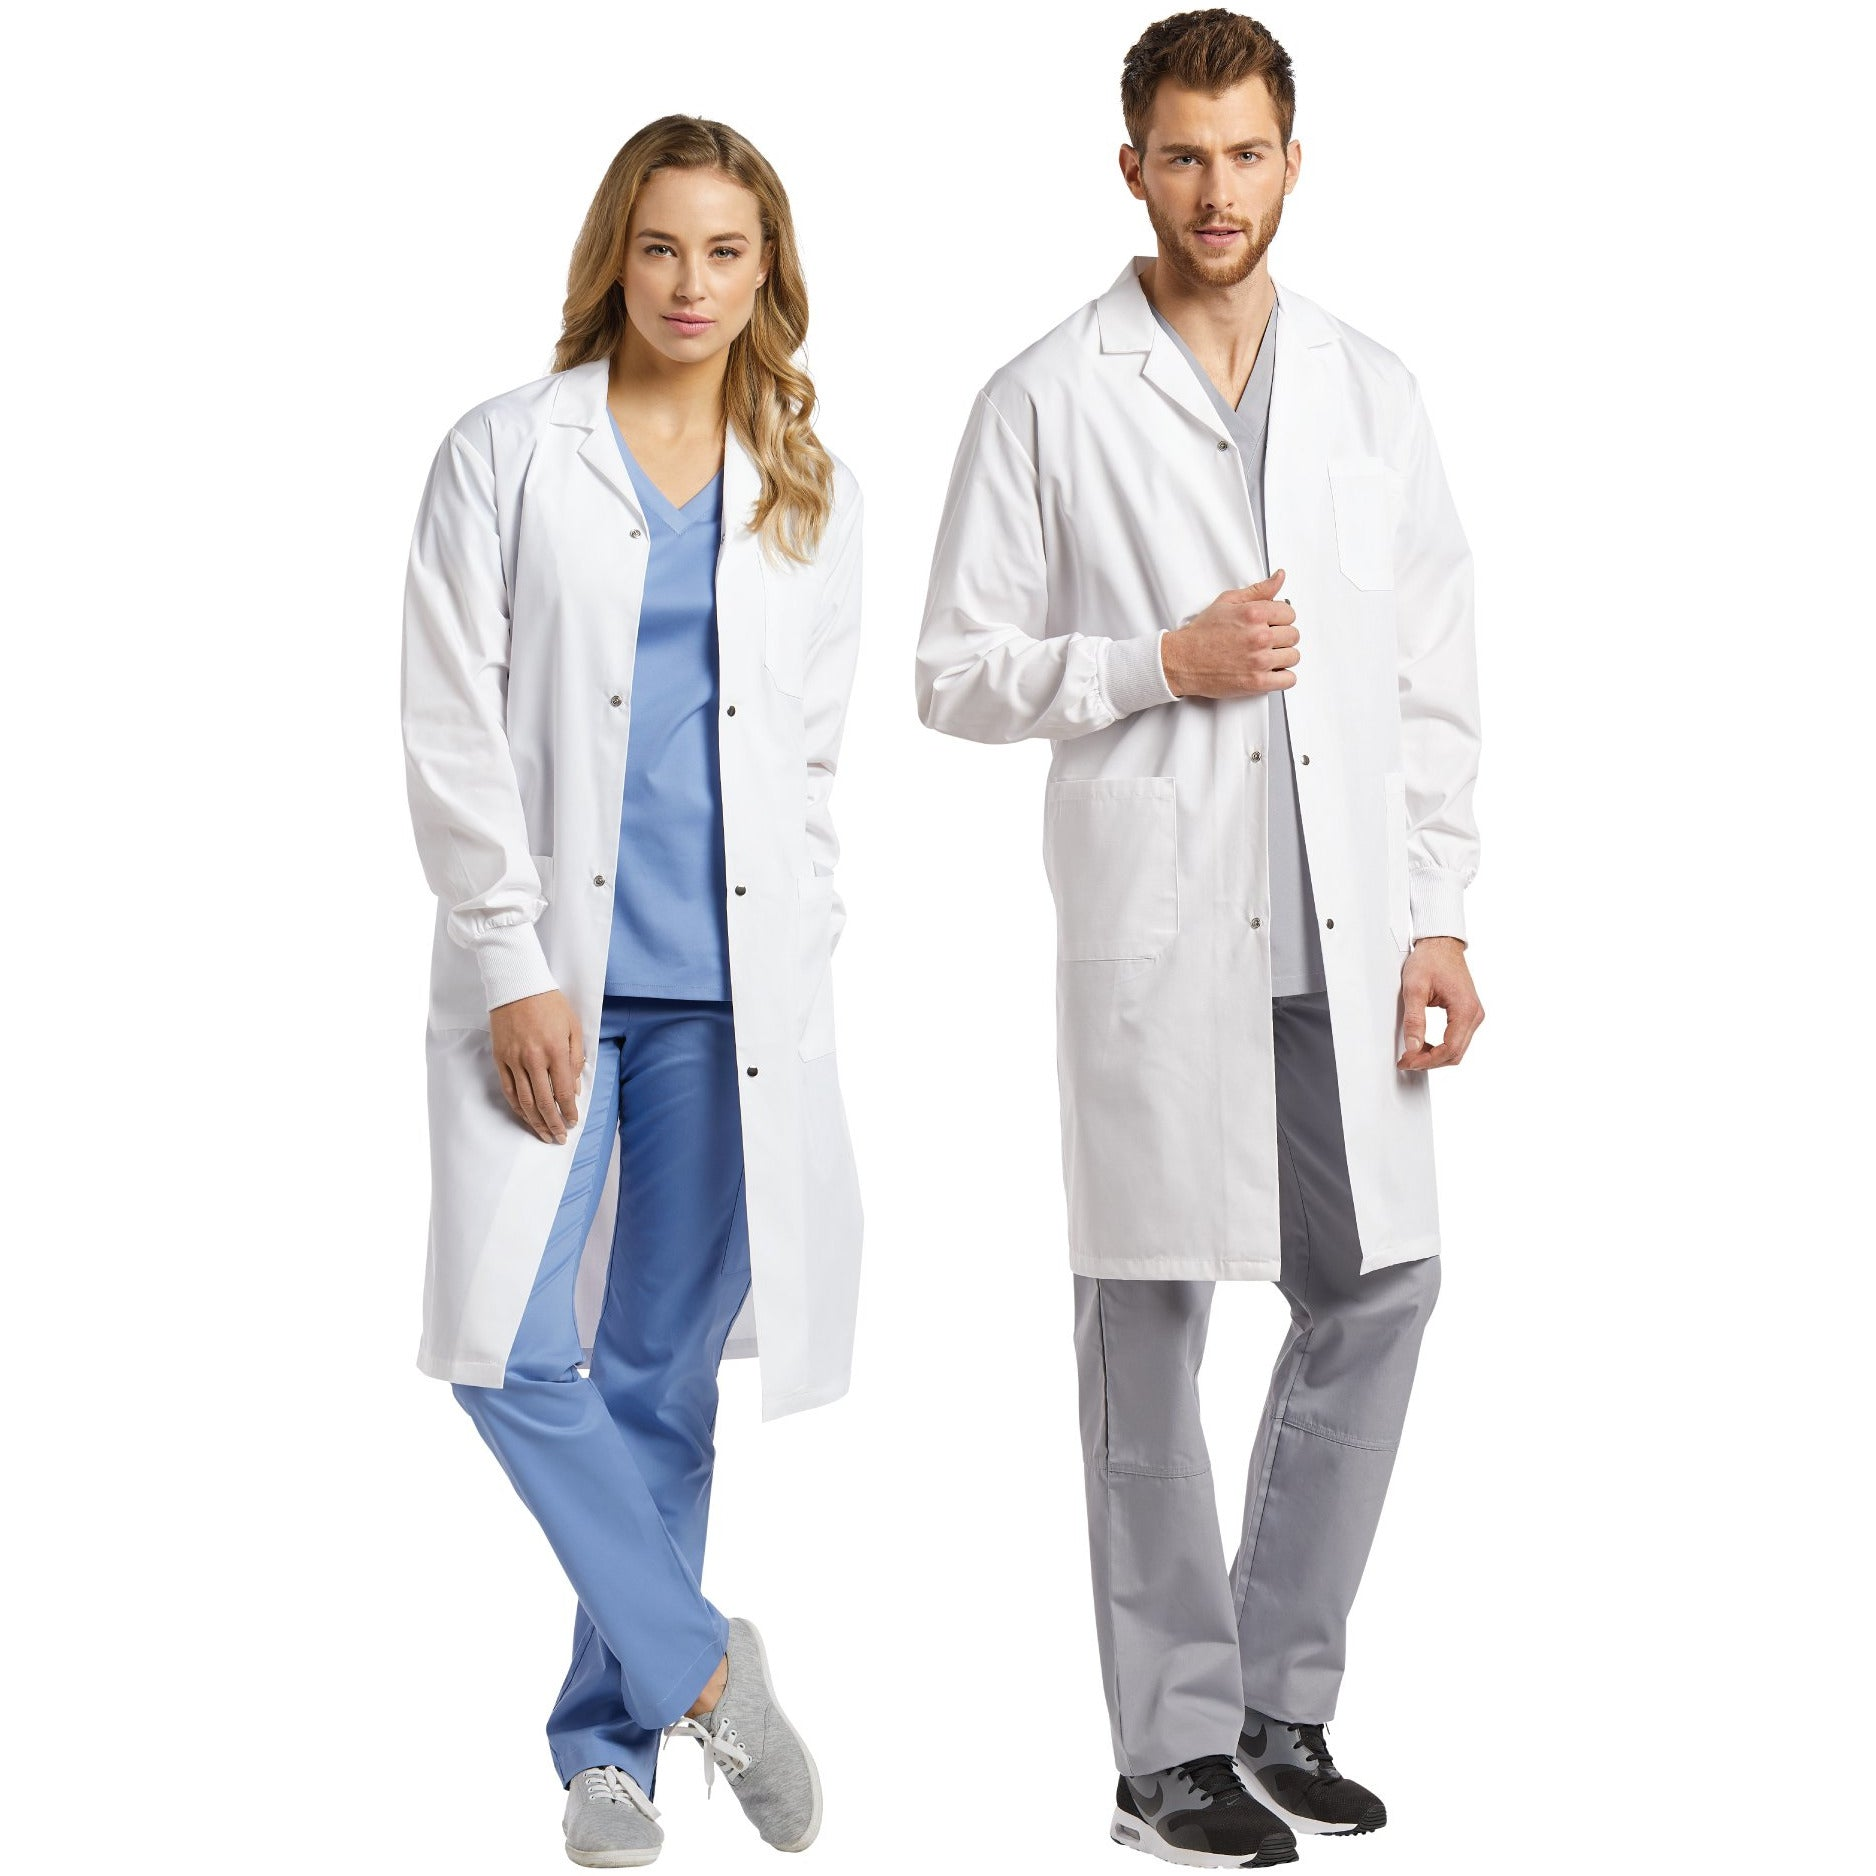 Unisex Three-Pocket Lab Coat with Snaps & Knit Cuffs